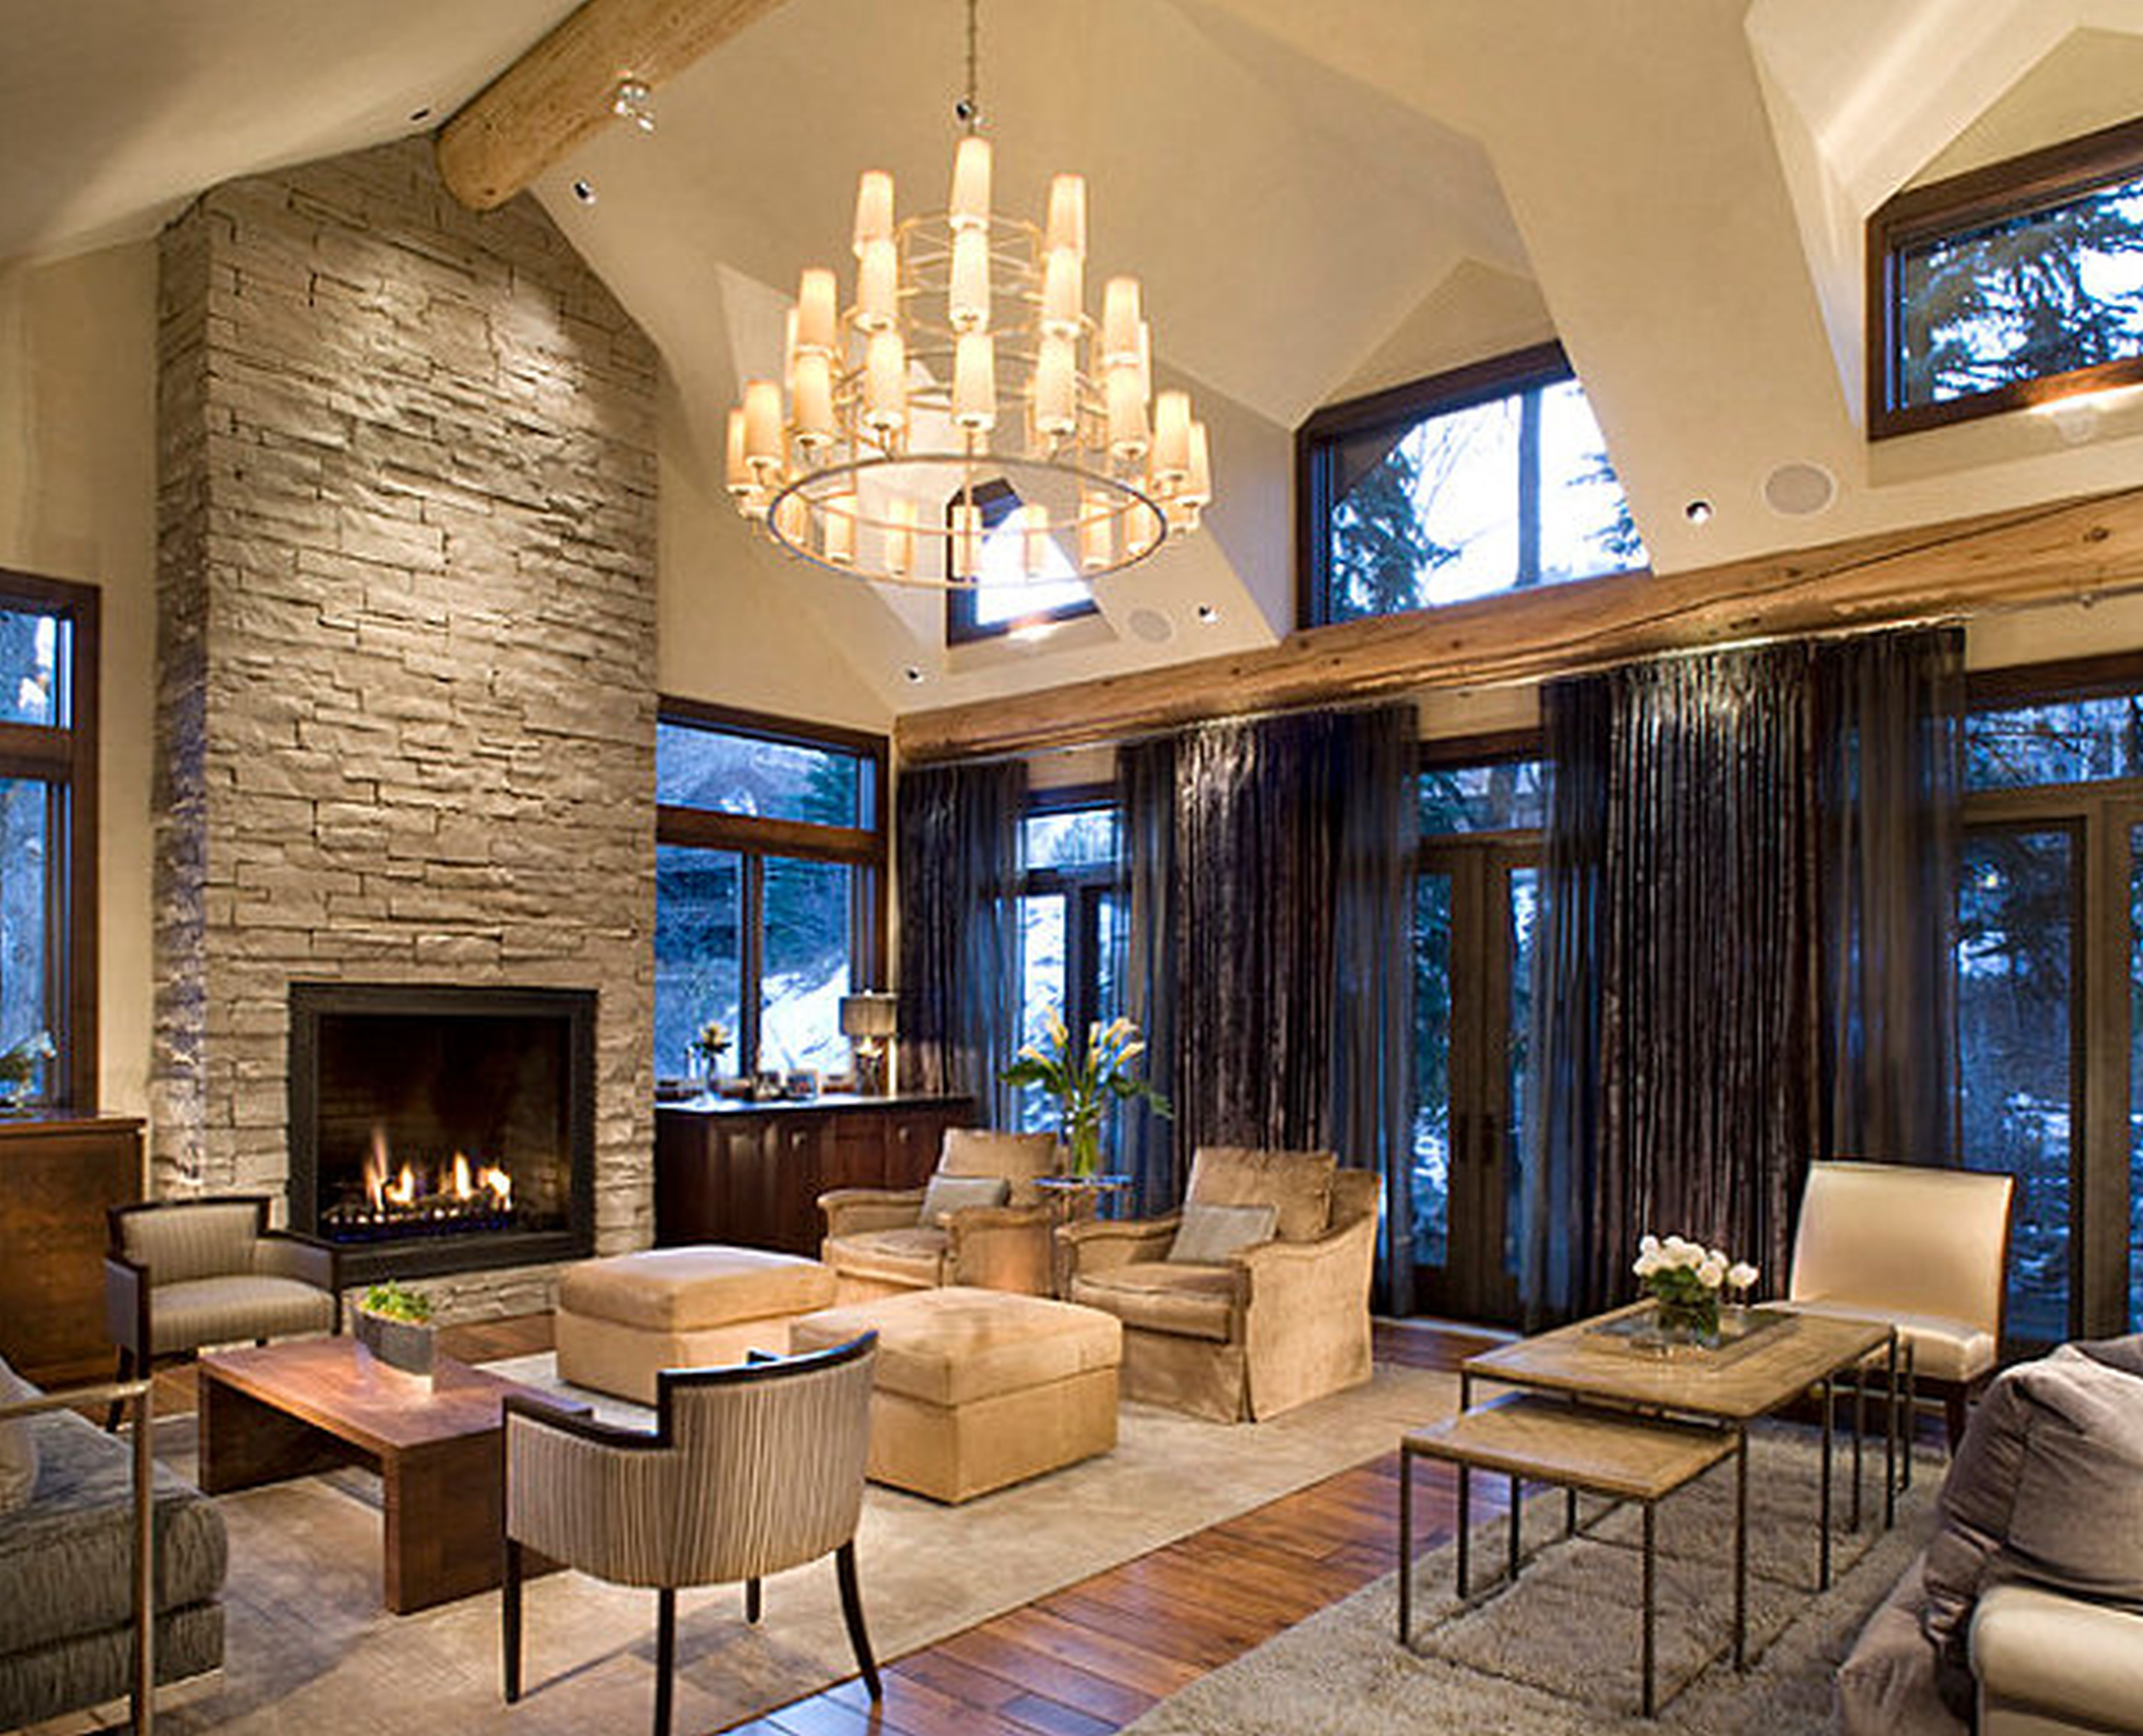 Cozy French Country Living Room Design With Elegant Decor Modern